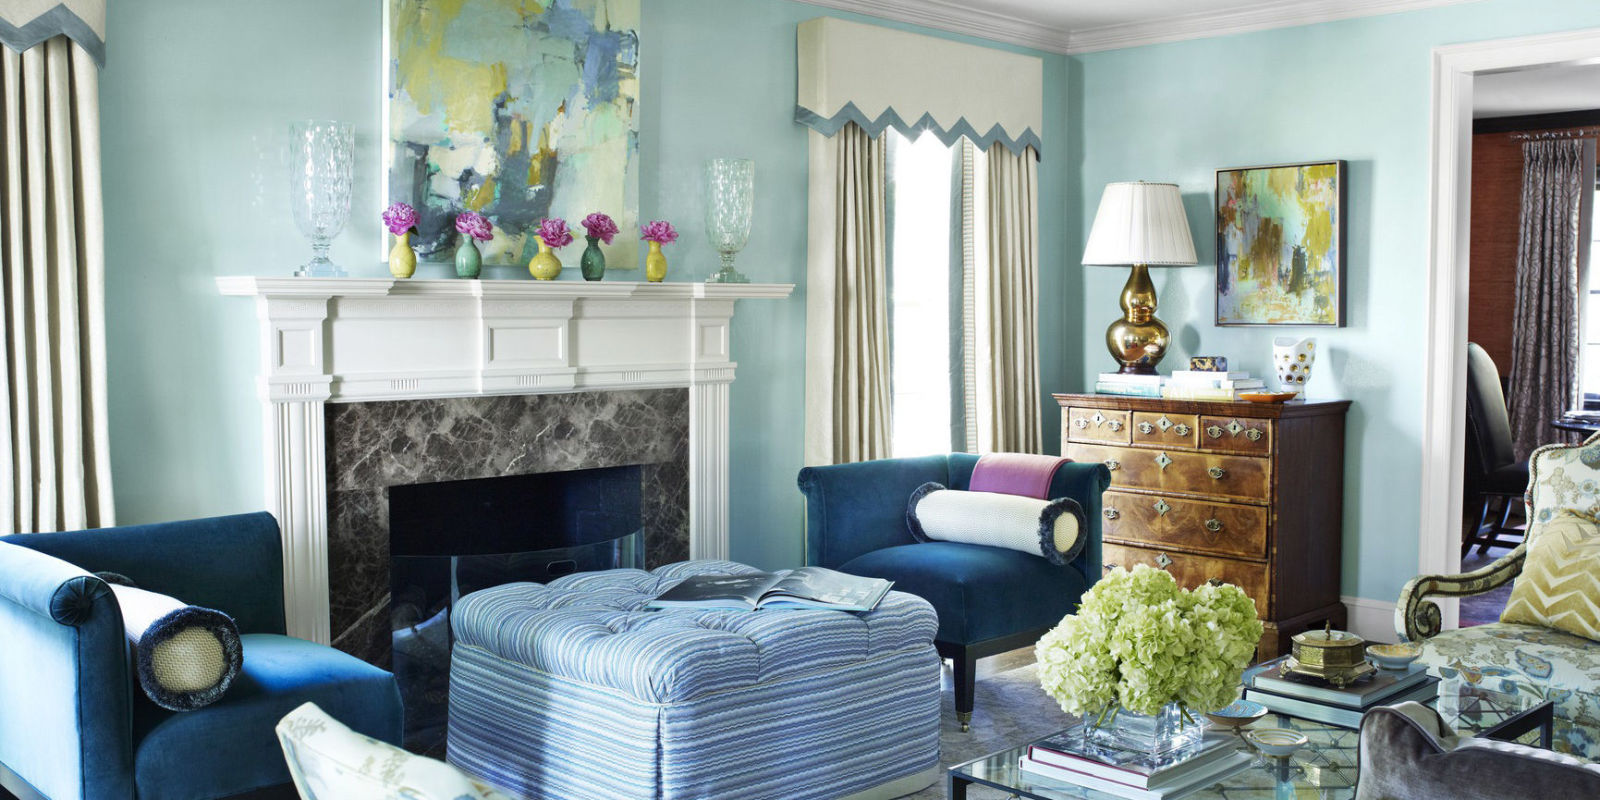 12 Best Living Room Color Ideas - Paint Colors for Living ...